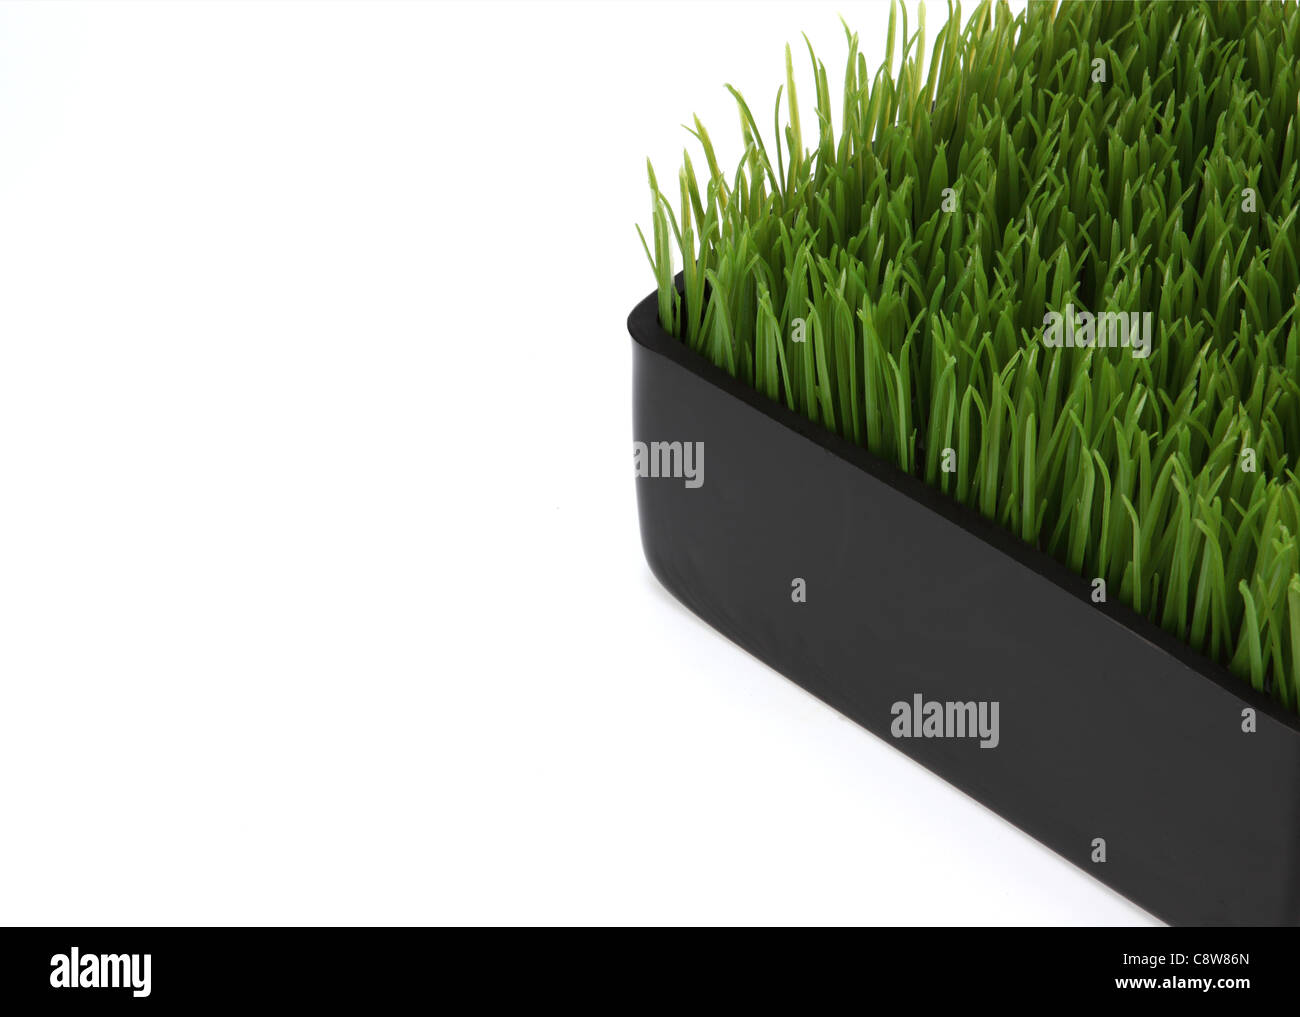 The corner of a container of green wheat grass. - Stock Image